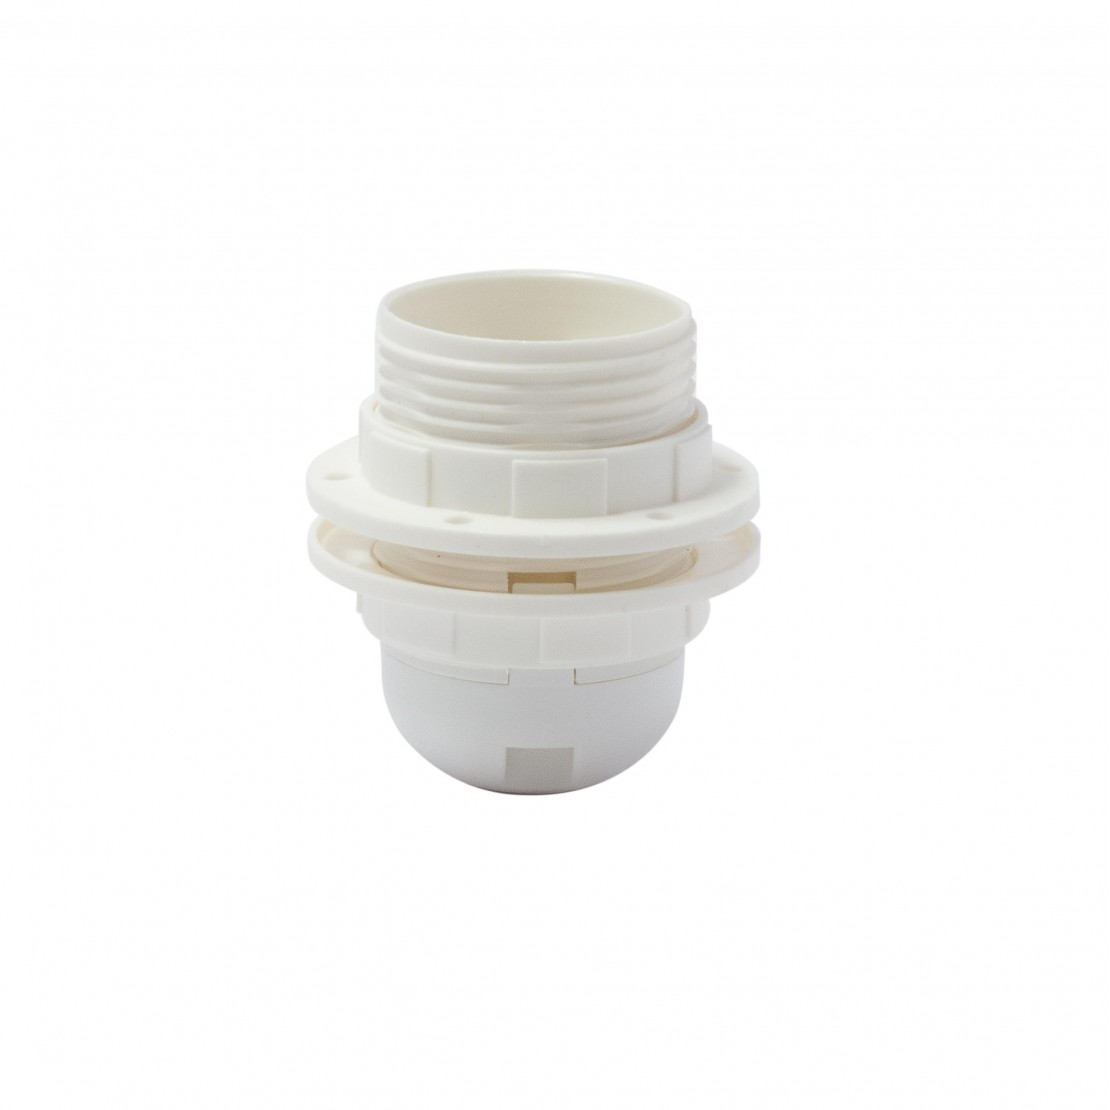 Threaded E27 quick-connect lamp holder, white